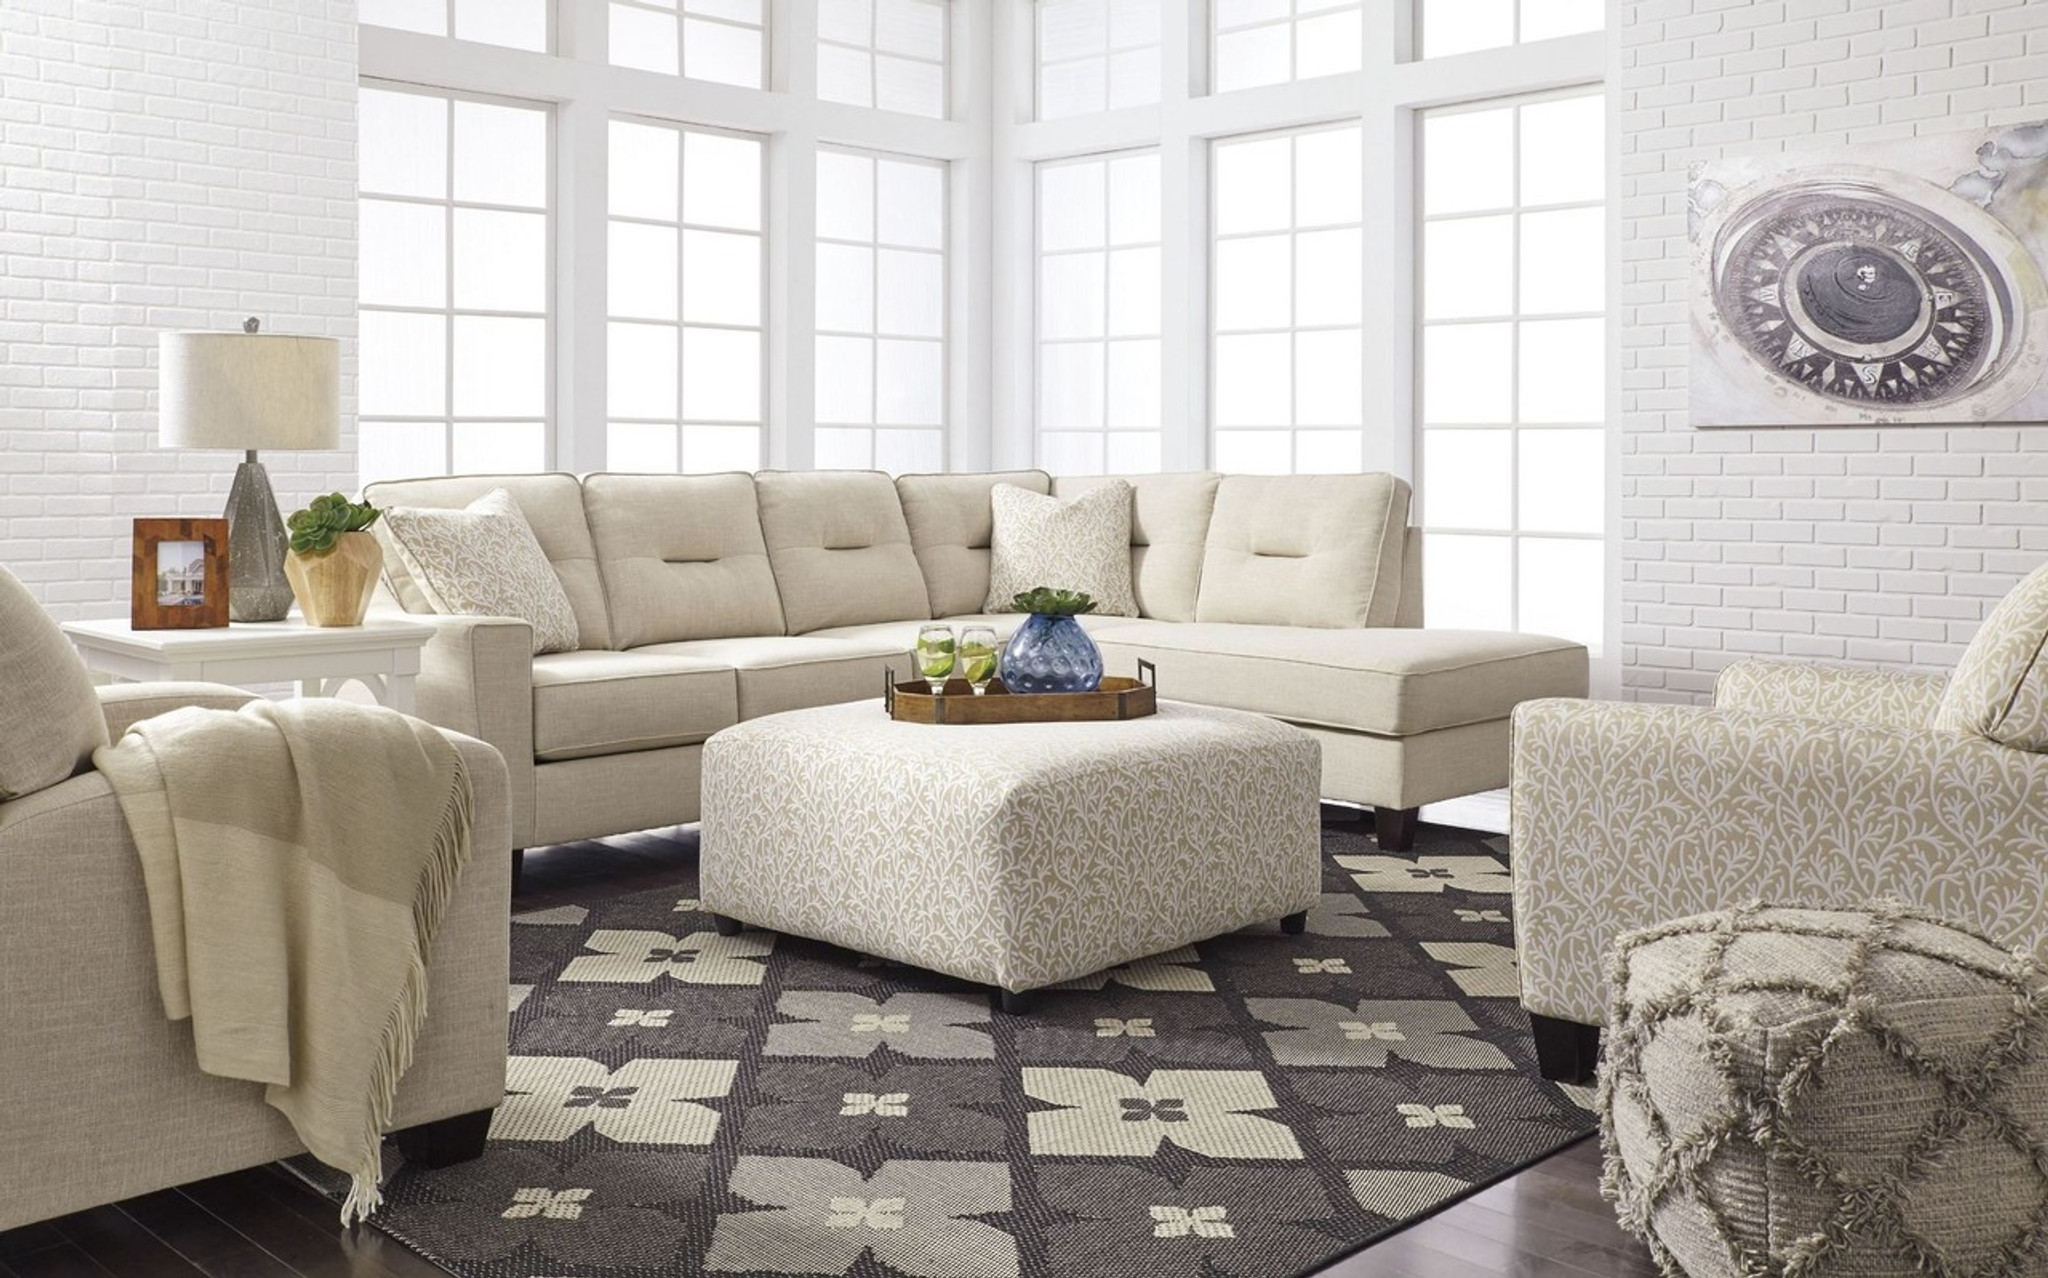 Excellent Kirwin Nuvella Sand Collection Sectional Set Home Interior And Landscaping Palasignezvosmurscom